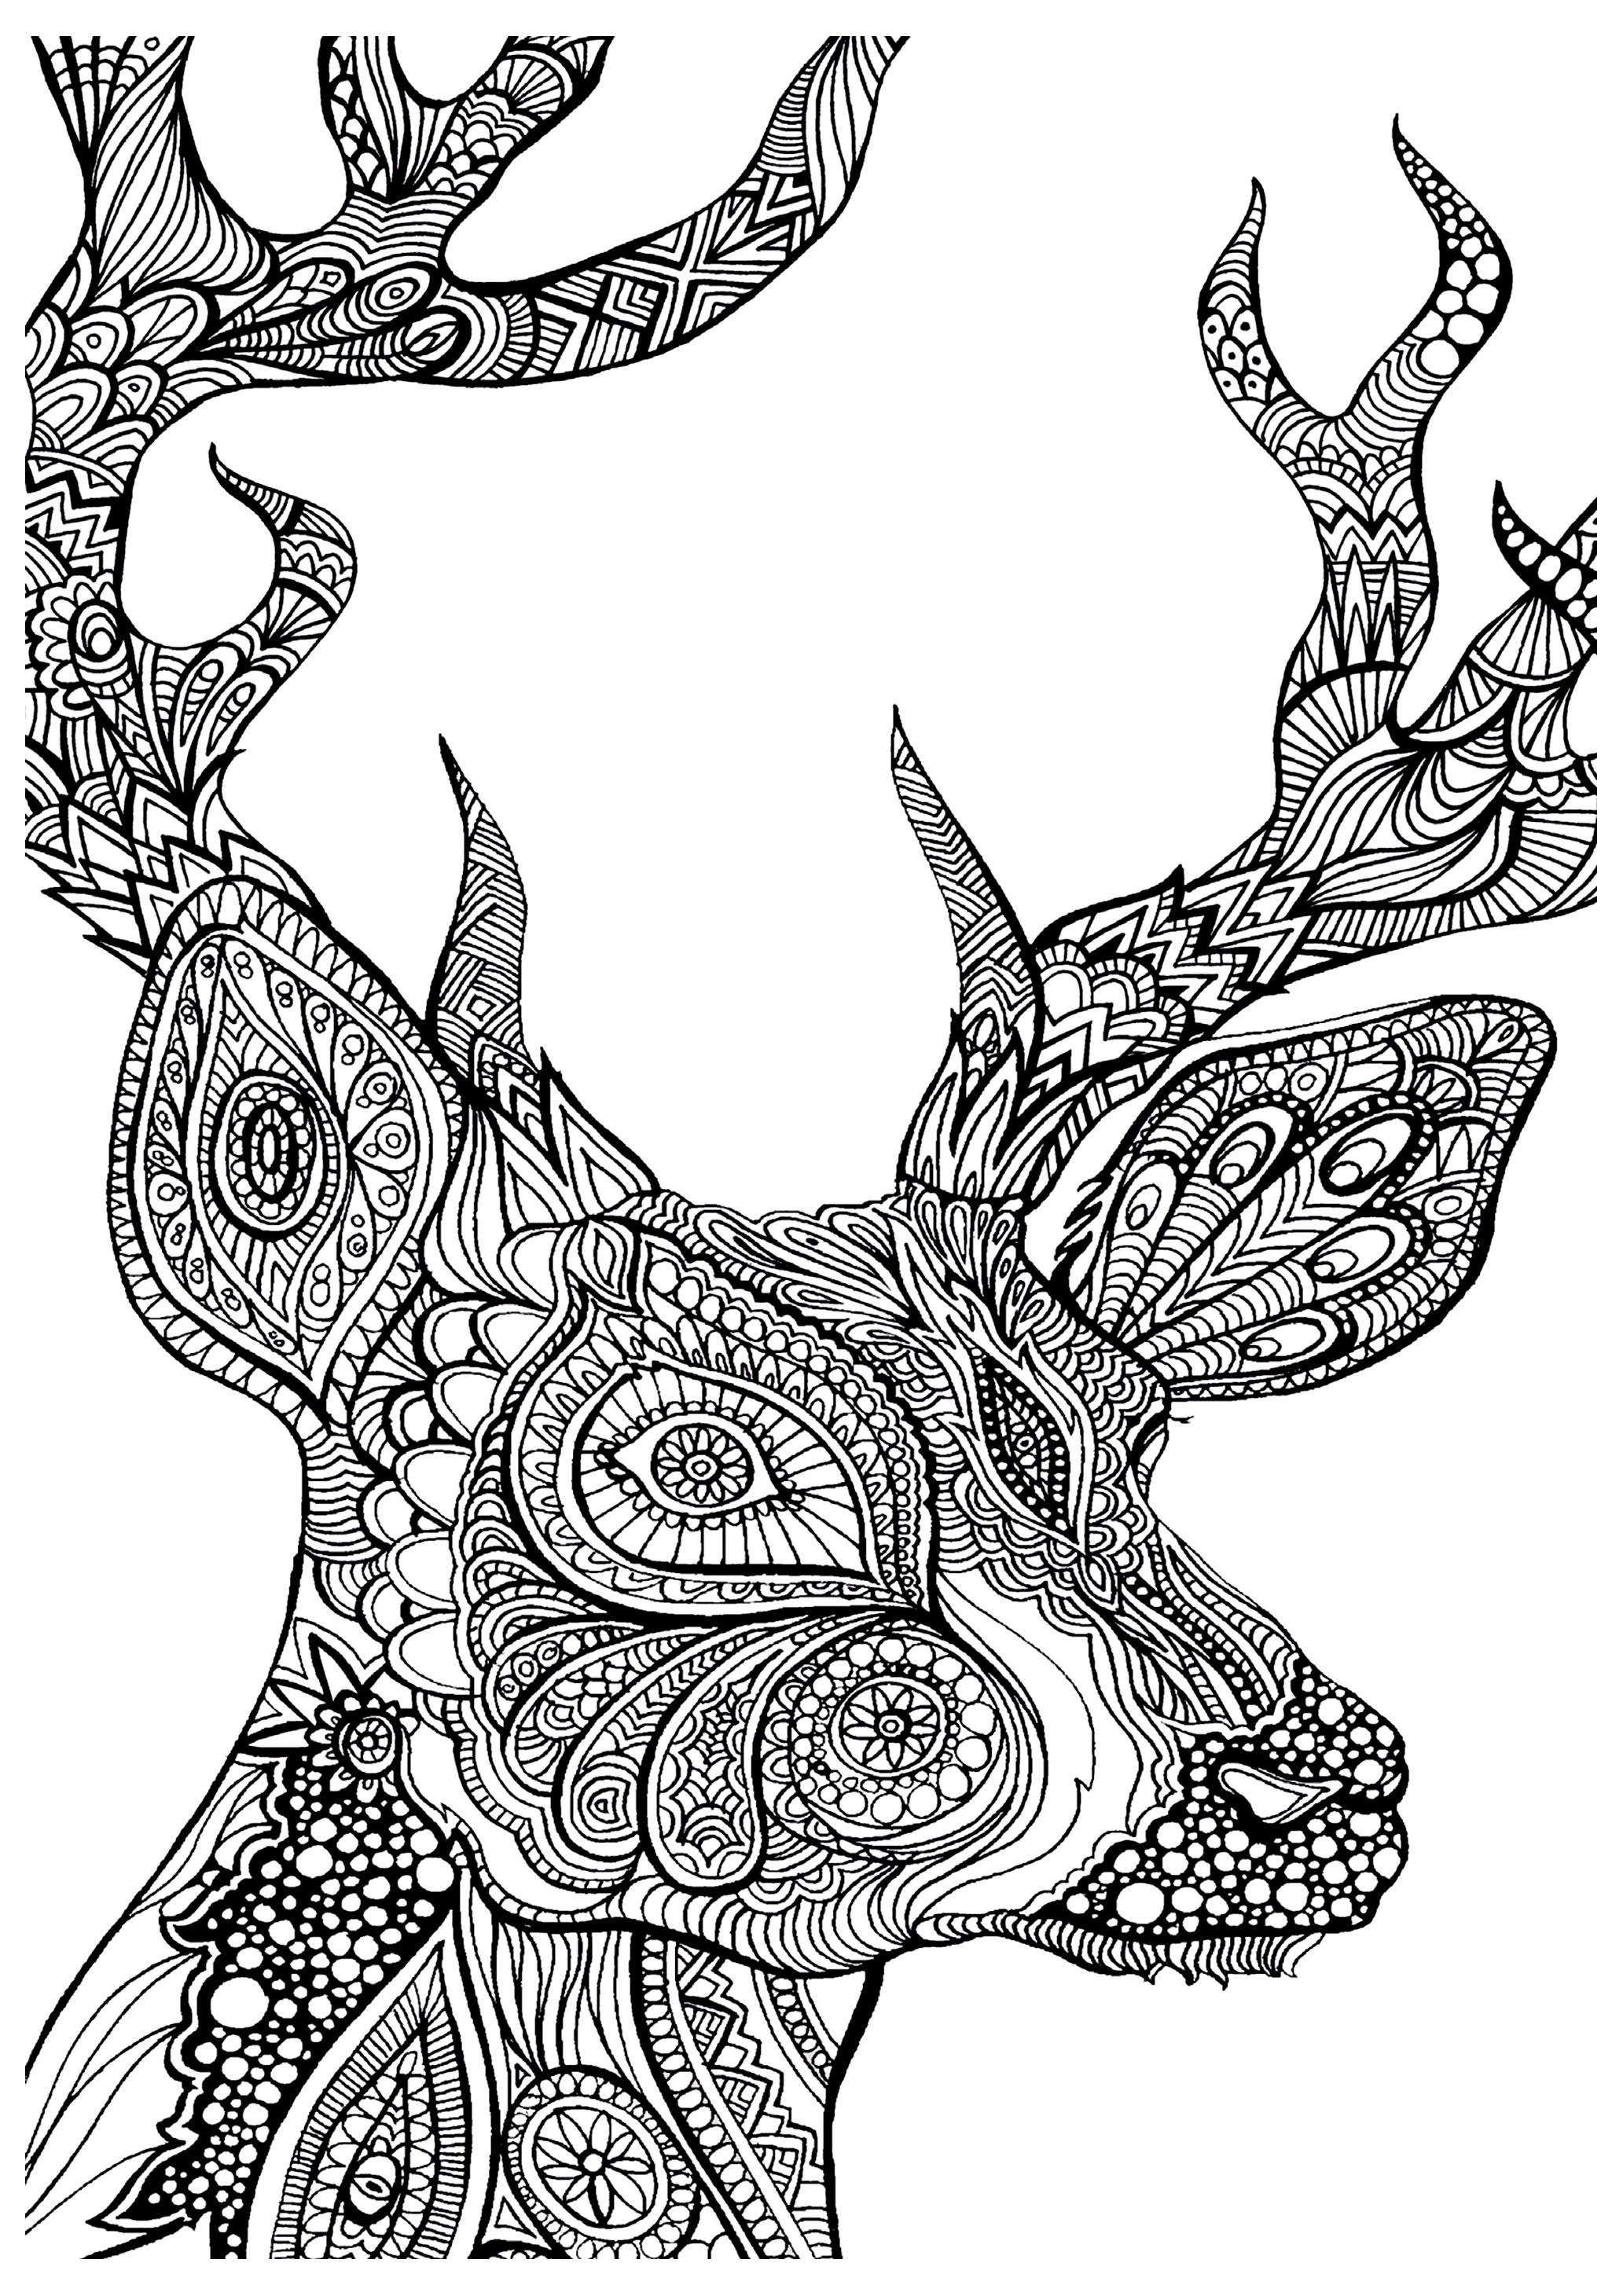 Coloring pages for adults animals - Coloring Deer Head Free To Print